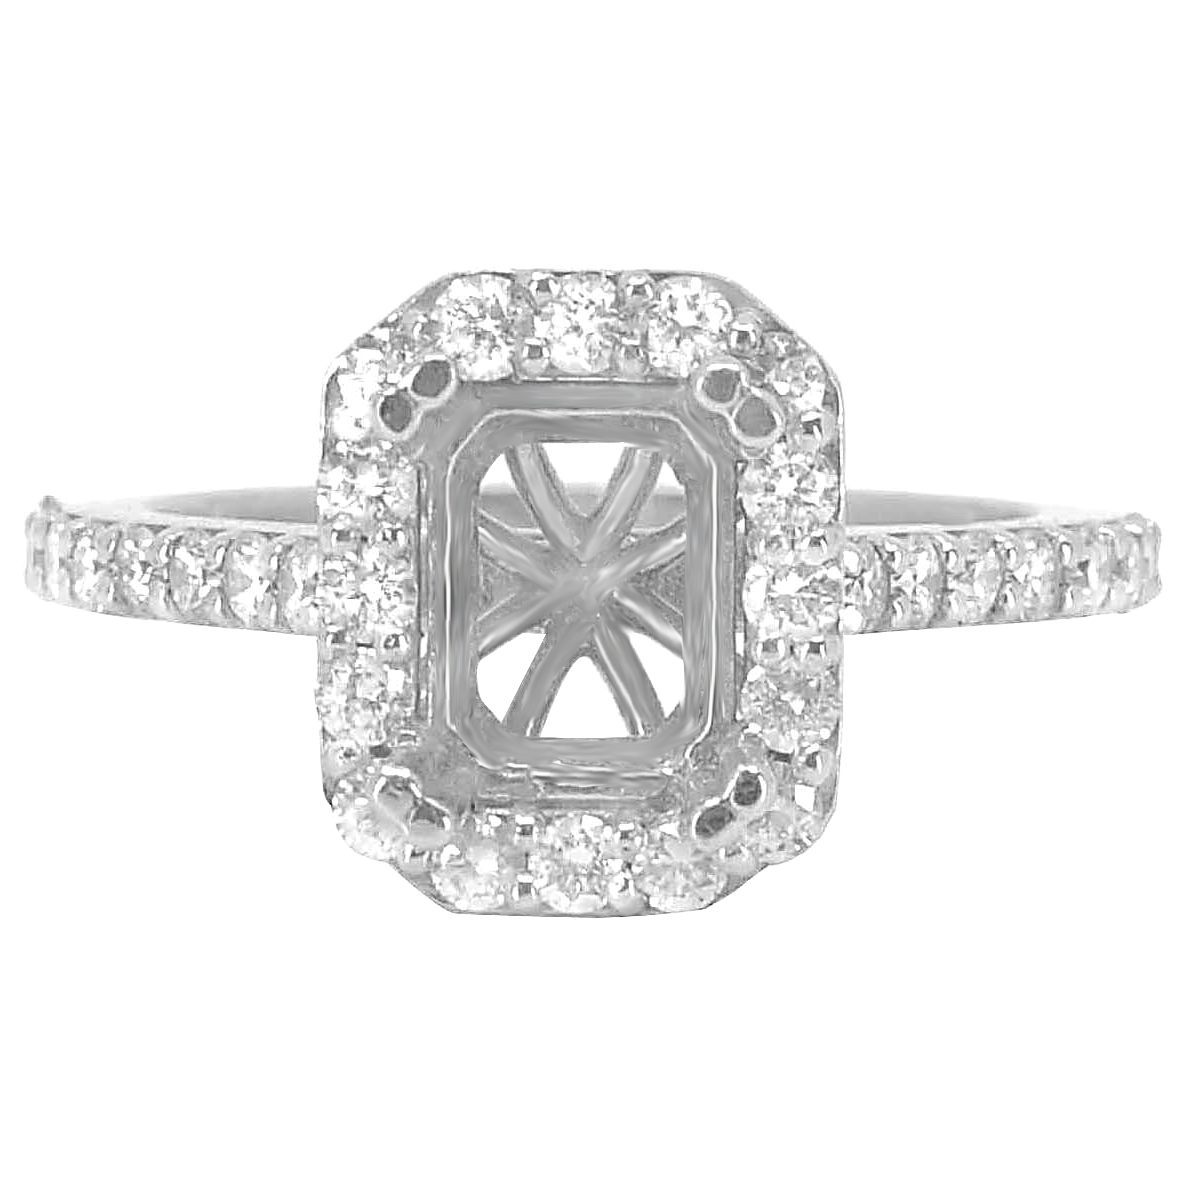 14K WHITE GOLD 9X11 EMERALD CUT HALO DIAMOND ENGAGEMENT RING